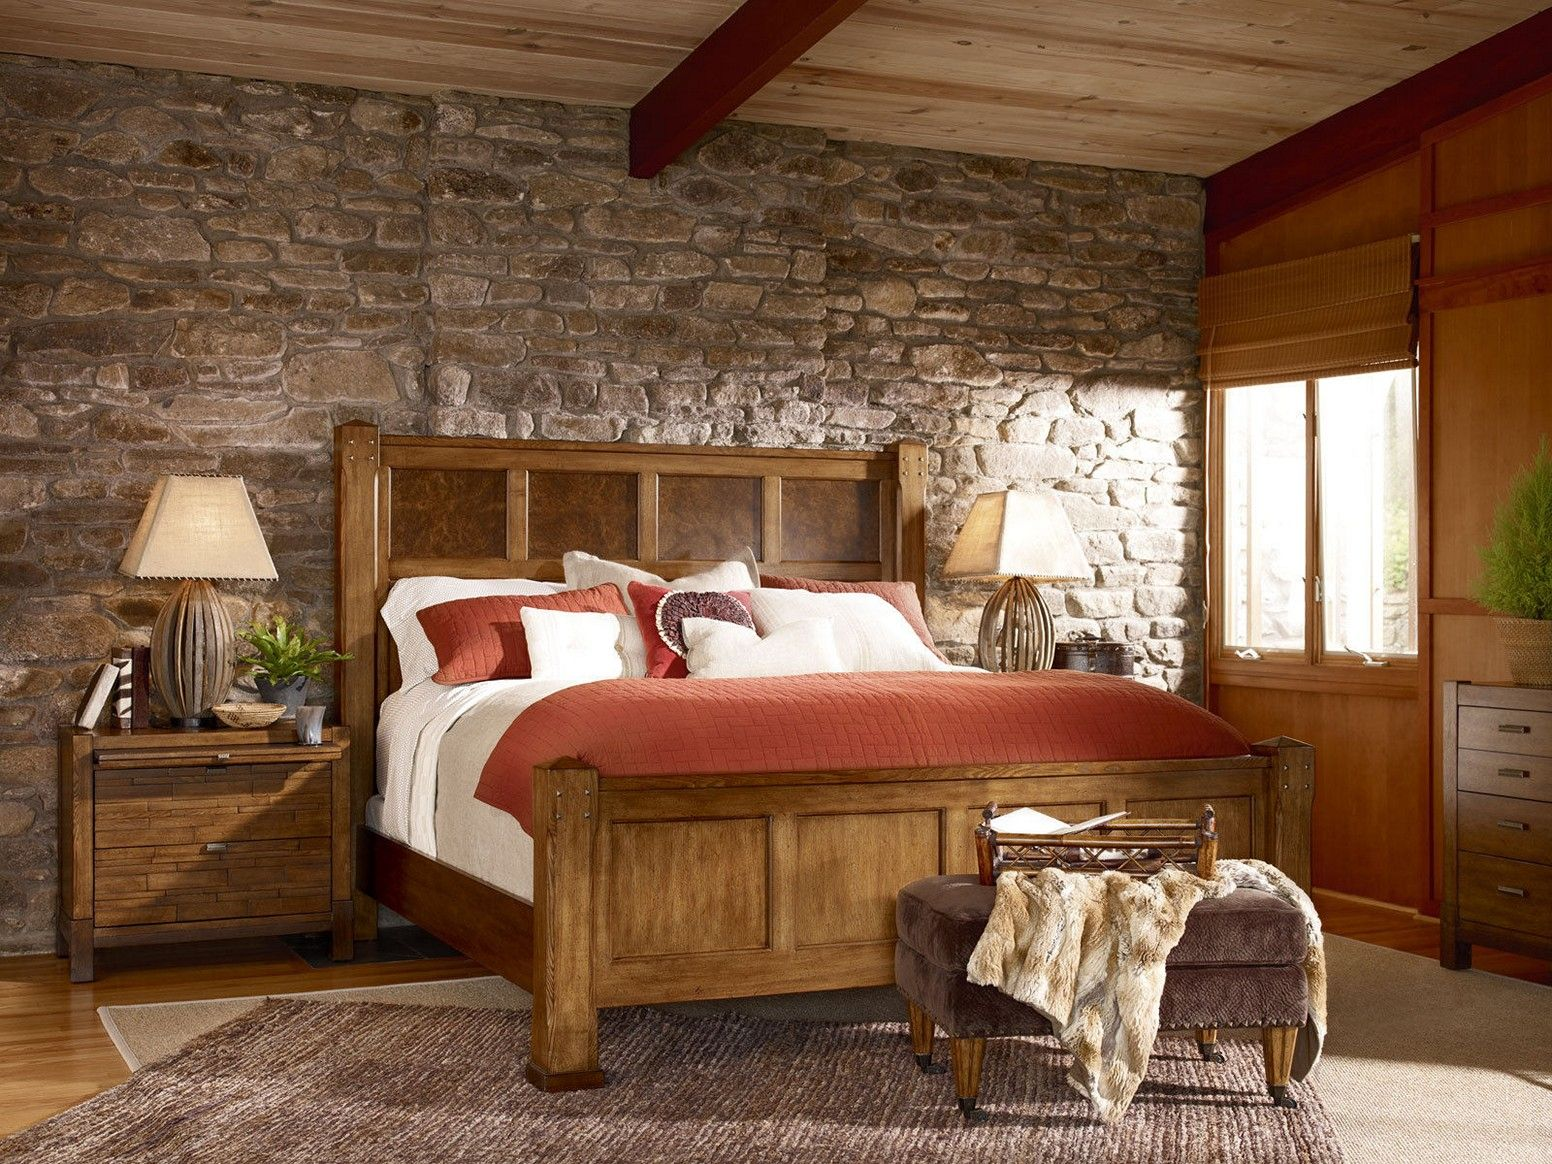 Rustic country bedroom decorating ideas interior decor for Bedroom interior design ideas pinterest